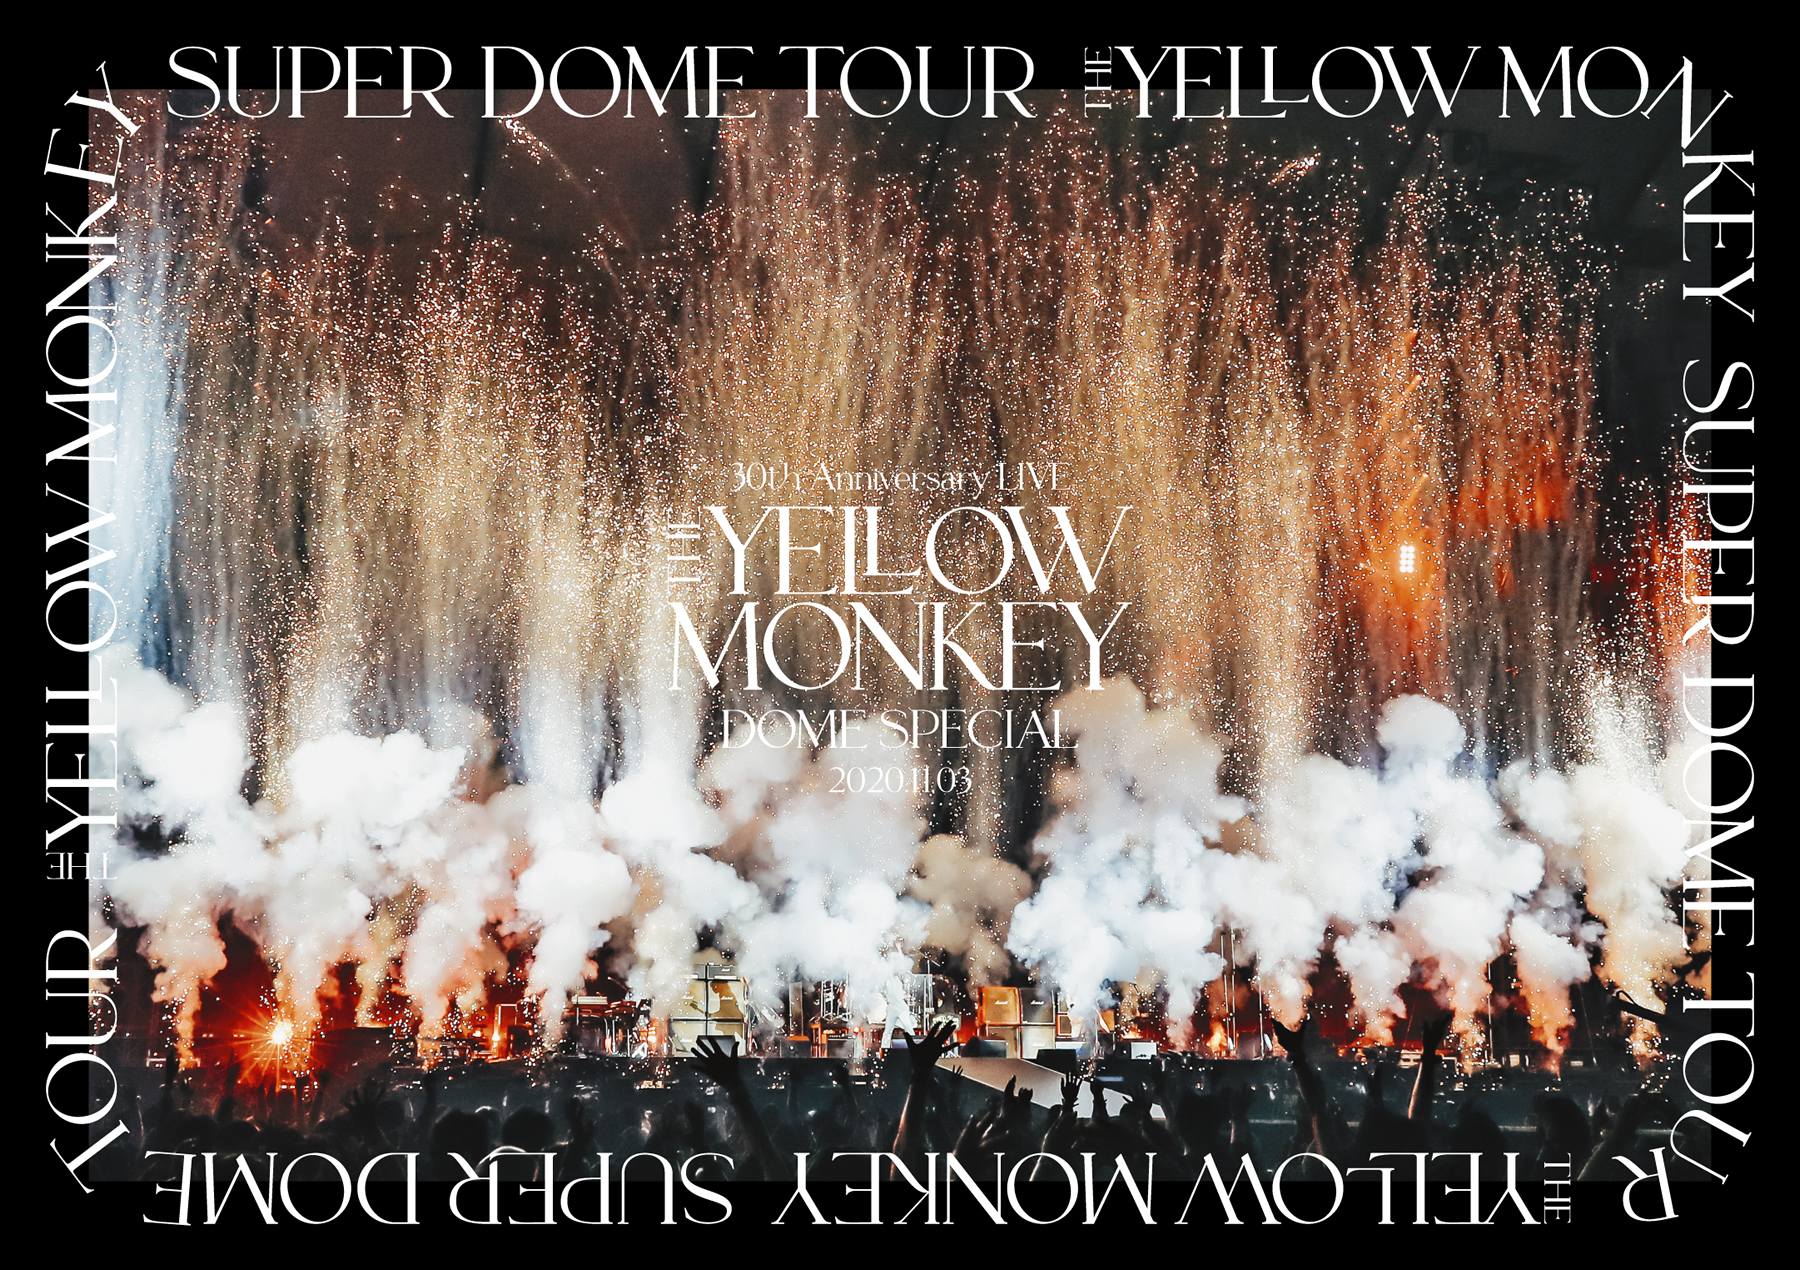 『THE YELLOW MONKEY 30th Anniversary LIVE -DOME SPECIAL- 2020.11.3』DVD